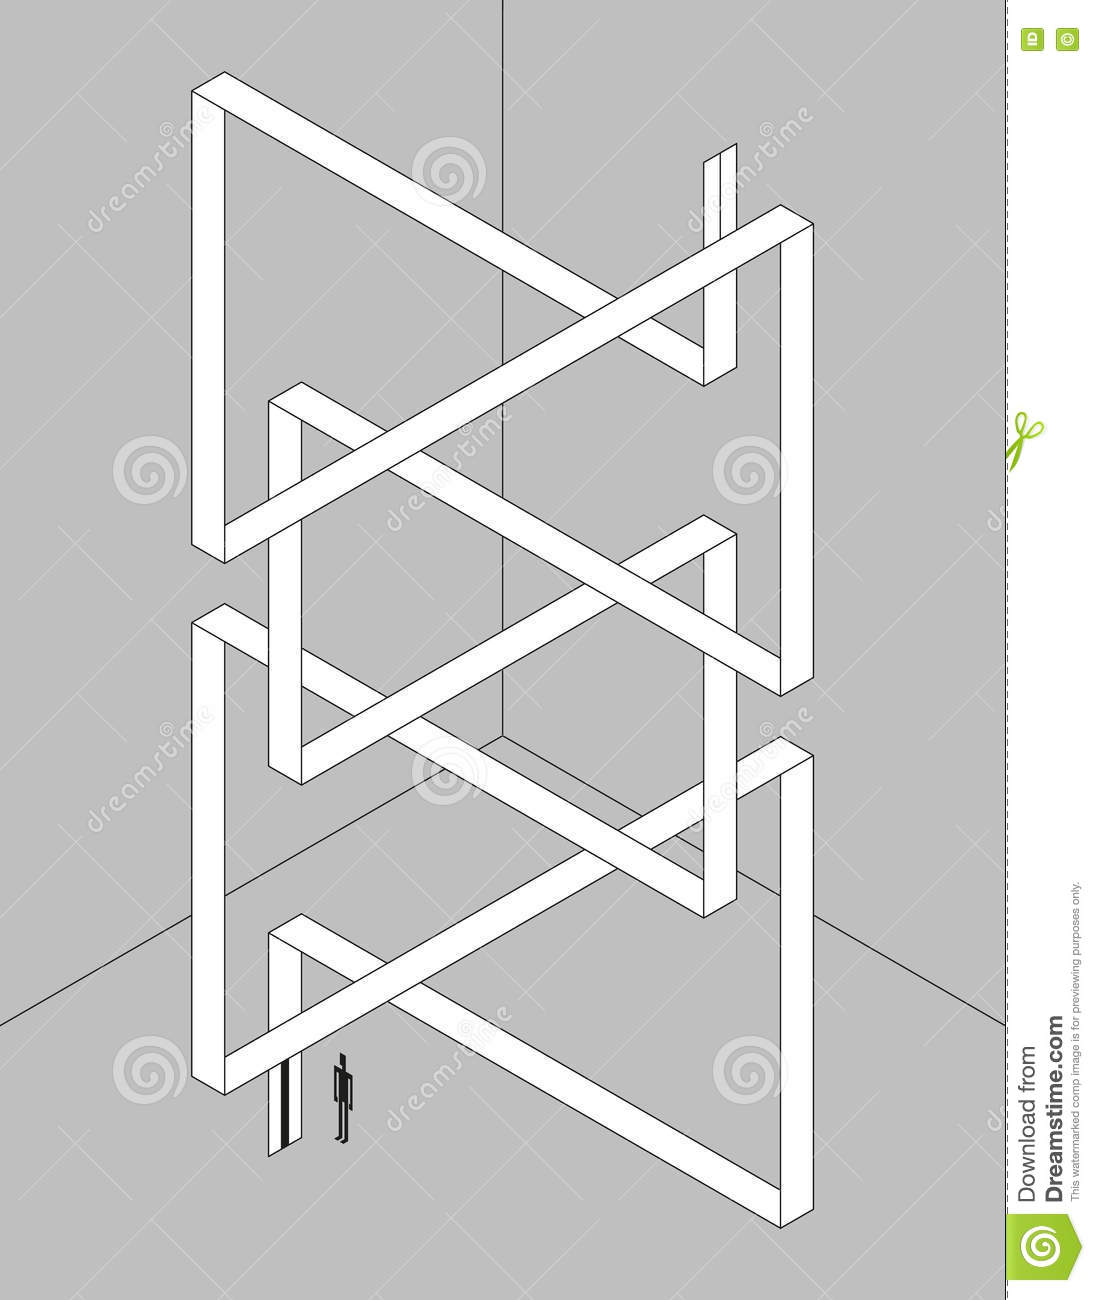 Twisted Isometric Ribbon Stock Vector Illustration Of Optical Elevator Schematic Monochrome As An With Illusion